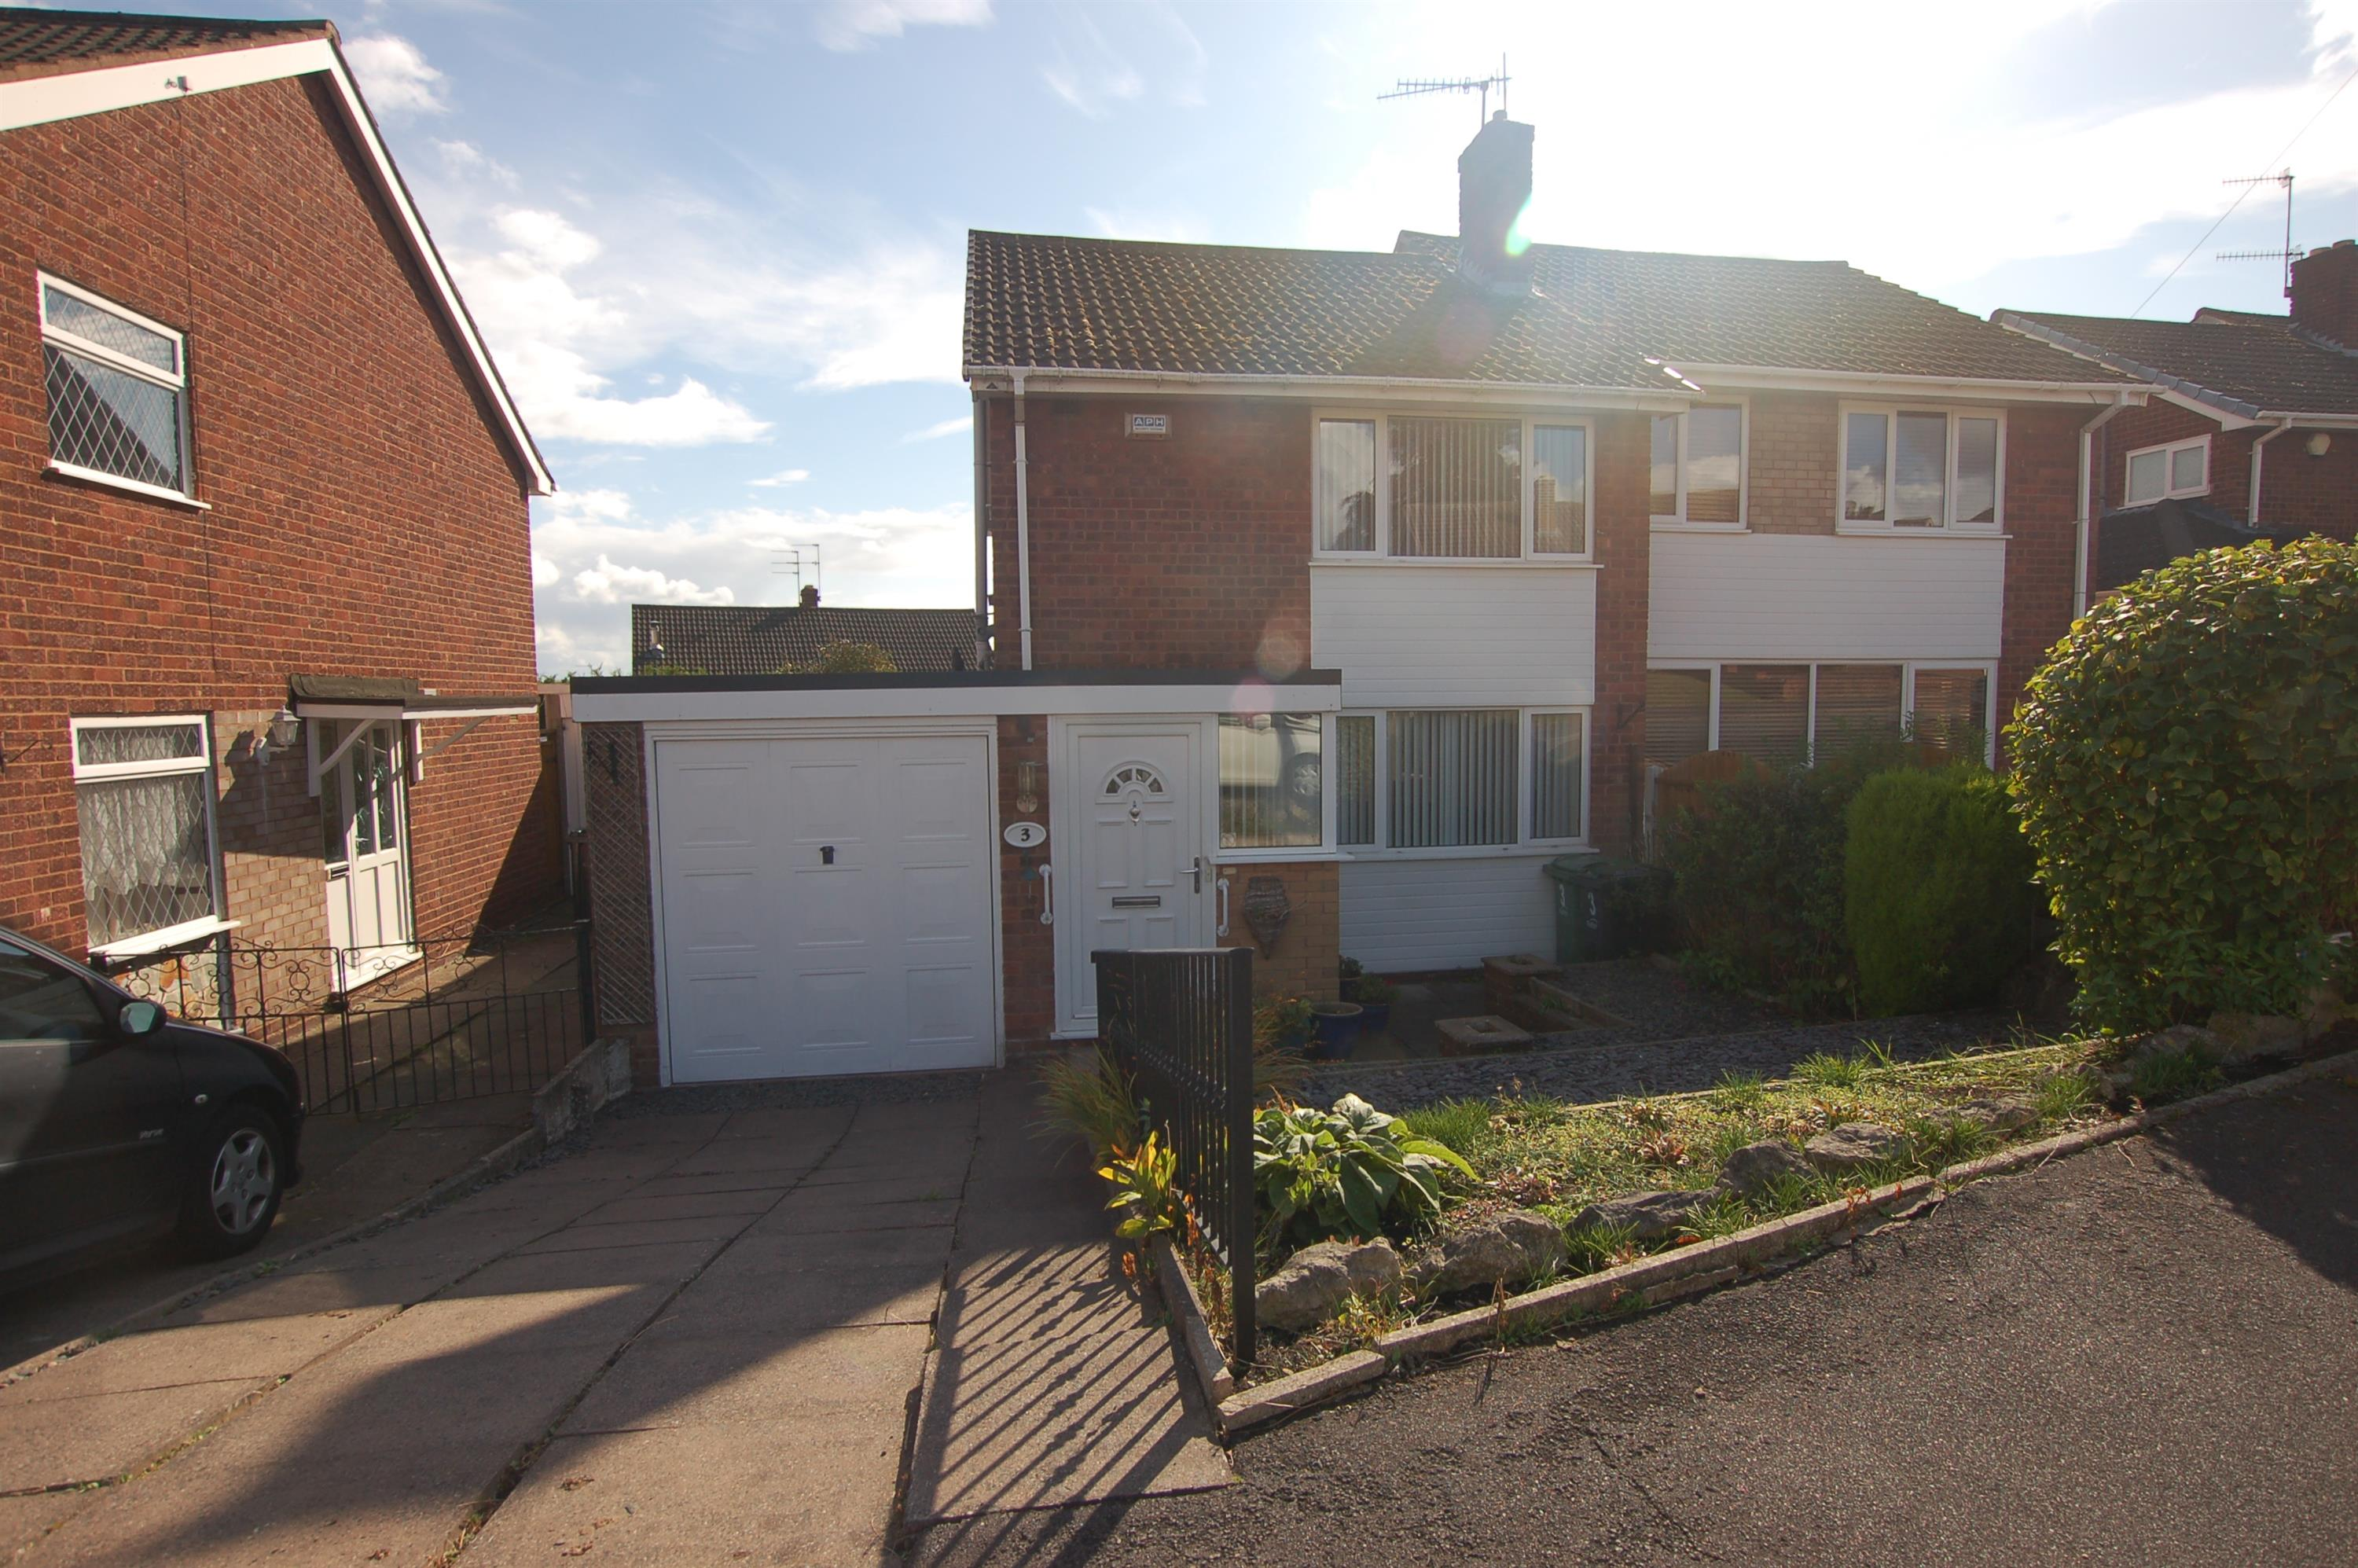 Edinburgh Crescent, Wordsley, DY8 5HB